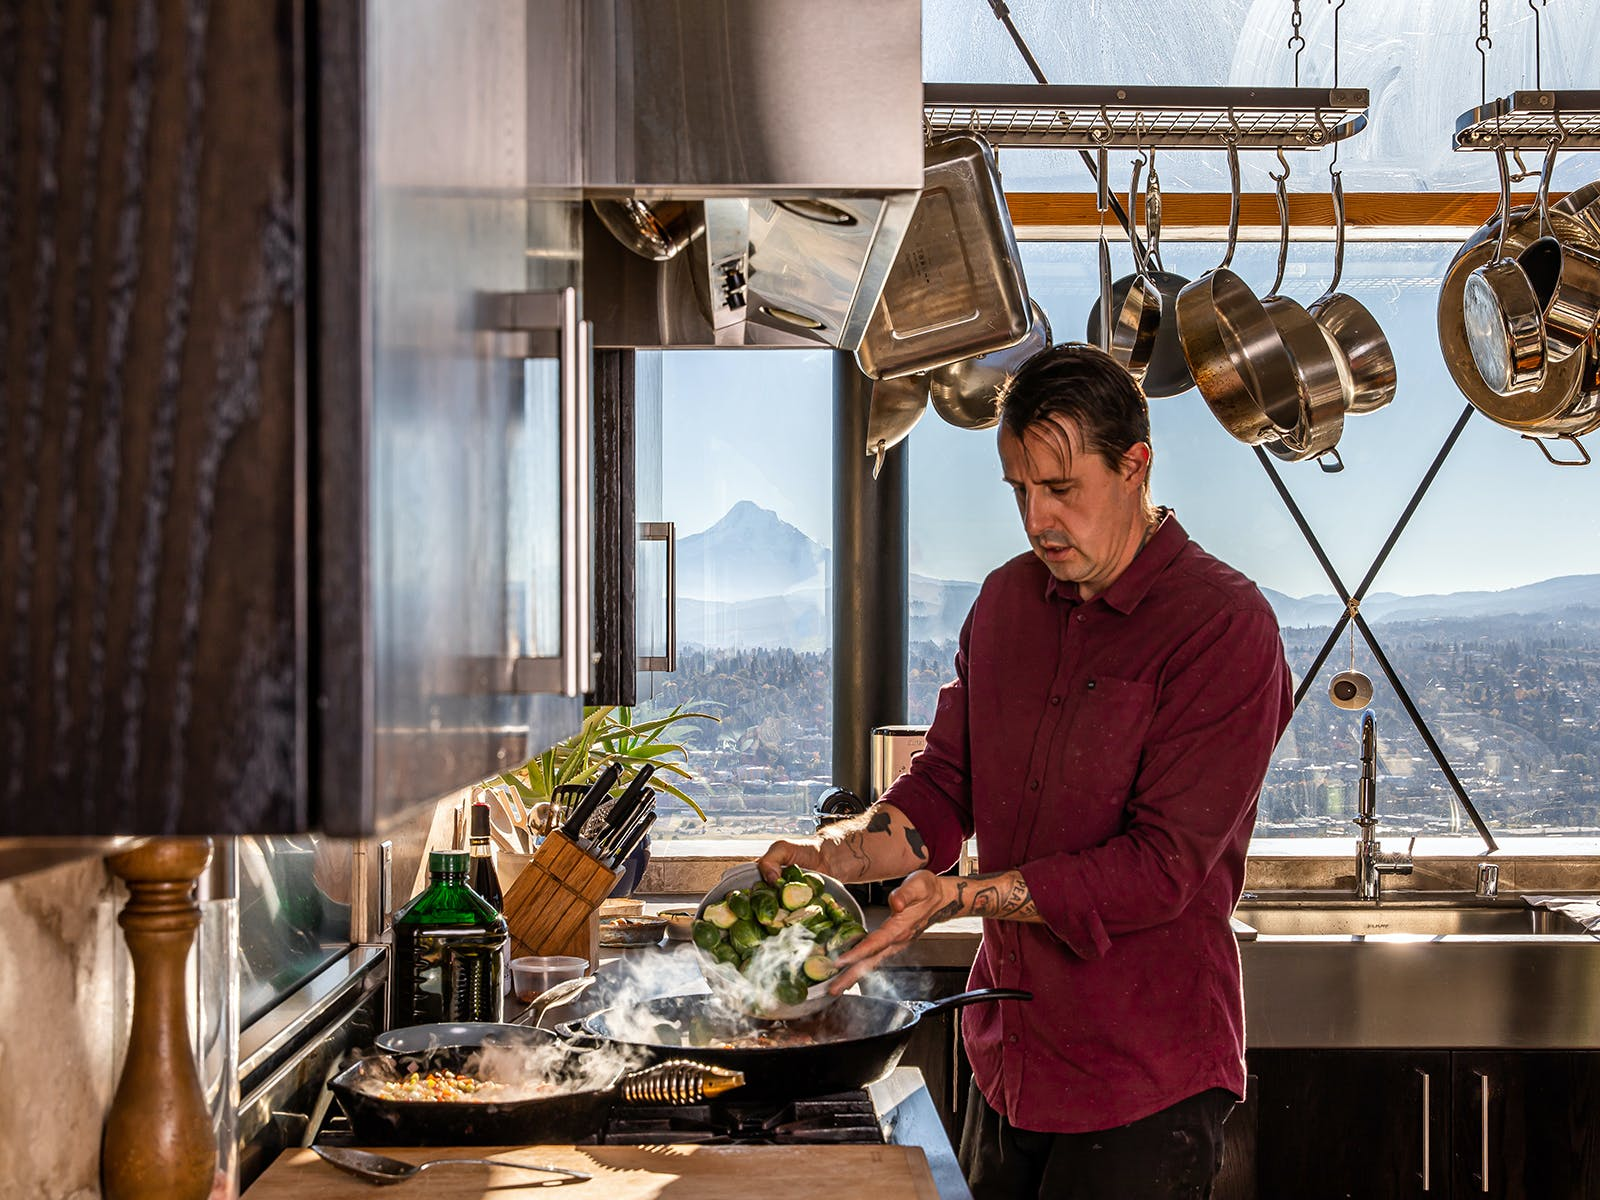 chef gabriel cooks brussels in a cast iron pot on the stove with mount hood in the distance